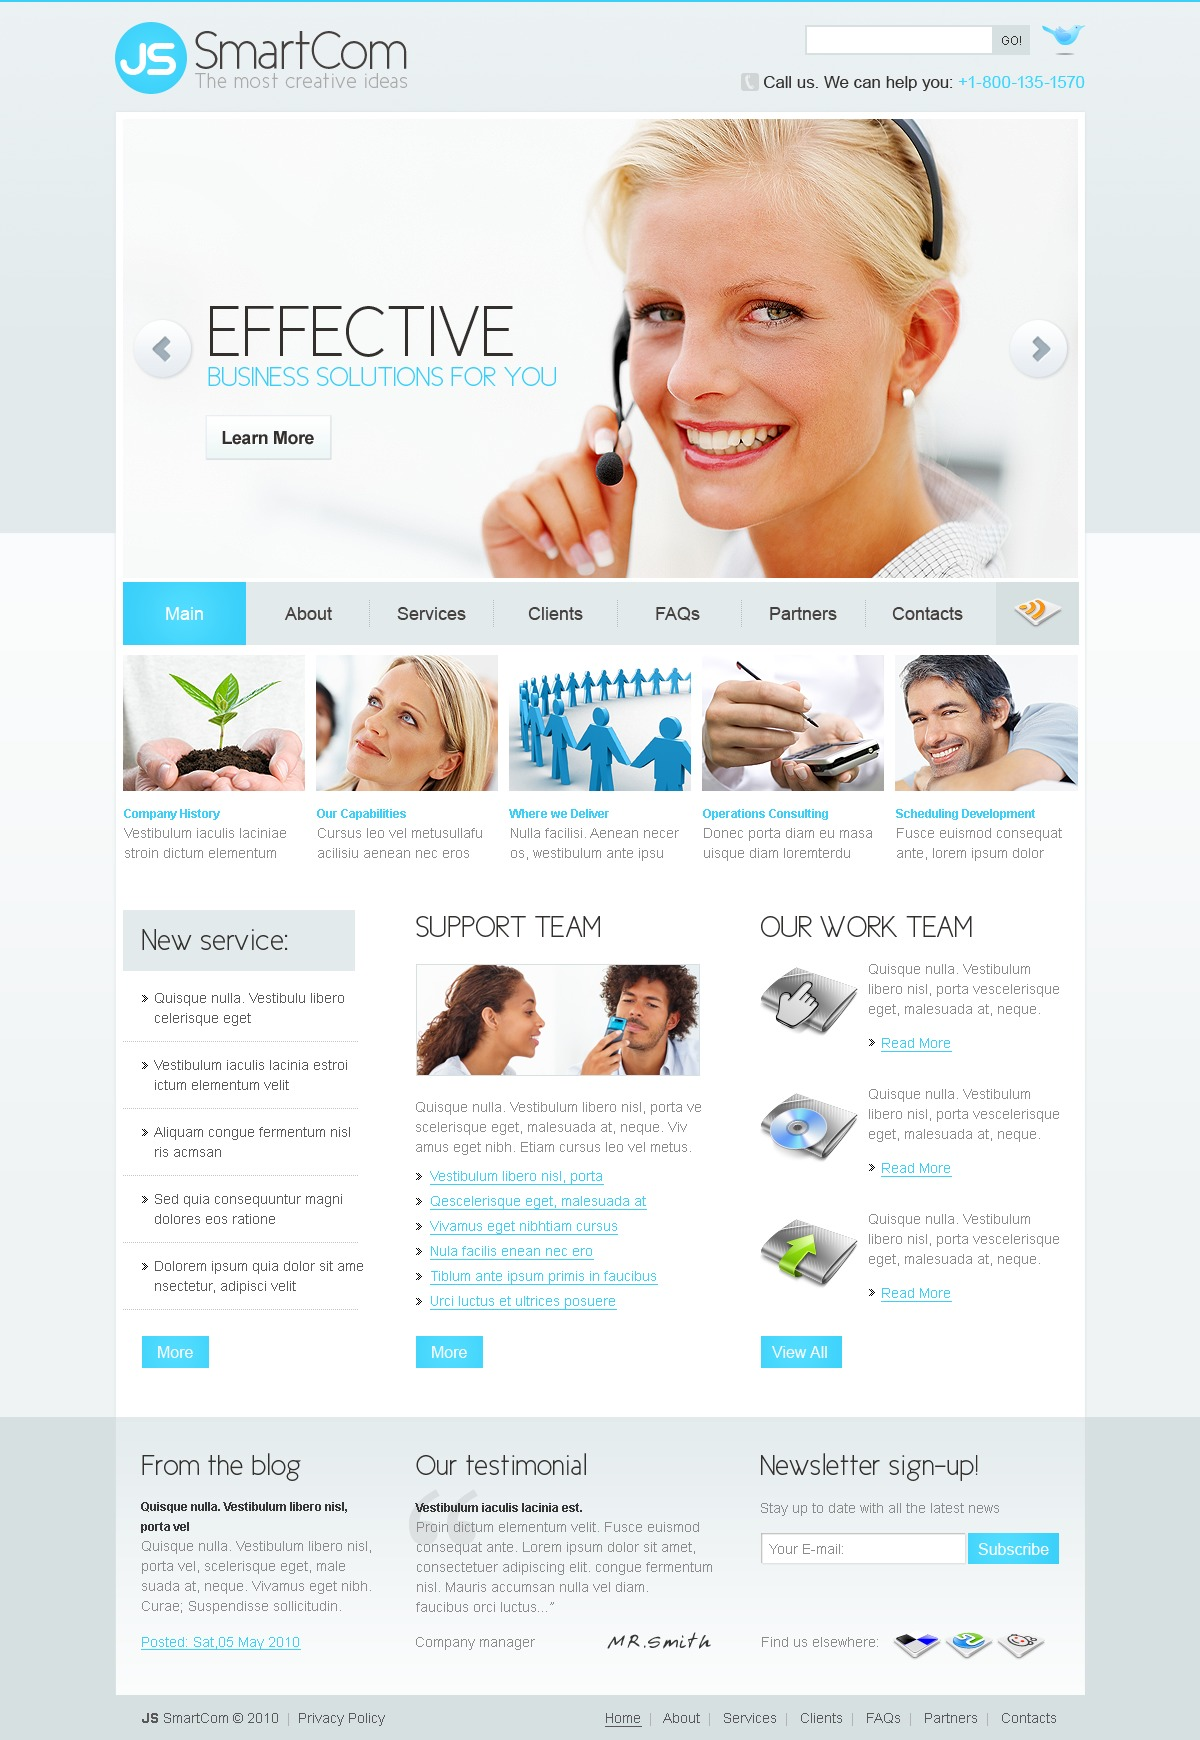 The JS Smartcom Business Company PSD Design 54503, one of the best PSD templates of its kind (business, flash 8, wide), also known as JS smartcom business company PSD template, corporate solutions PSD template, innovations PSD template, contacts PSD template, service PSD template, support PSD template, information dealer PSD template, stocks PSD template, team PSD template, success PSD template, money PSD template, marketing PSD template, director PSD template, manager PSD template, analytics PSD template, planning PSD template, limited PSD template, office PSD template, sales and related with JS smartcom business company, corporate solutions, innovations, contacts, service, support, information dealer, stocks, team, success, money, marketing, director, manager, analytics, planning, limited, office, sales, etc.